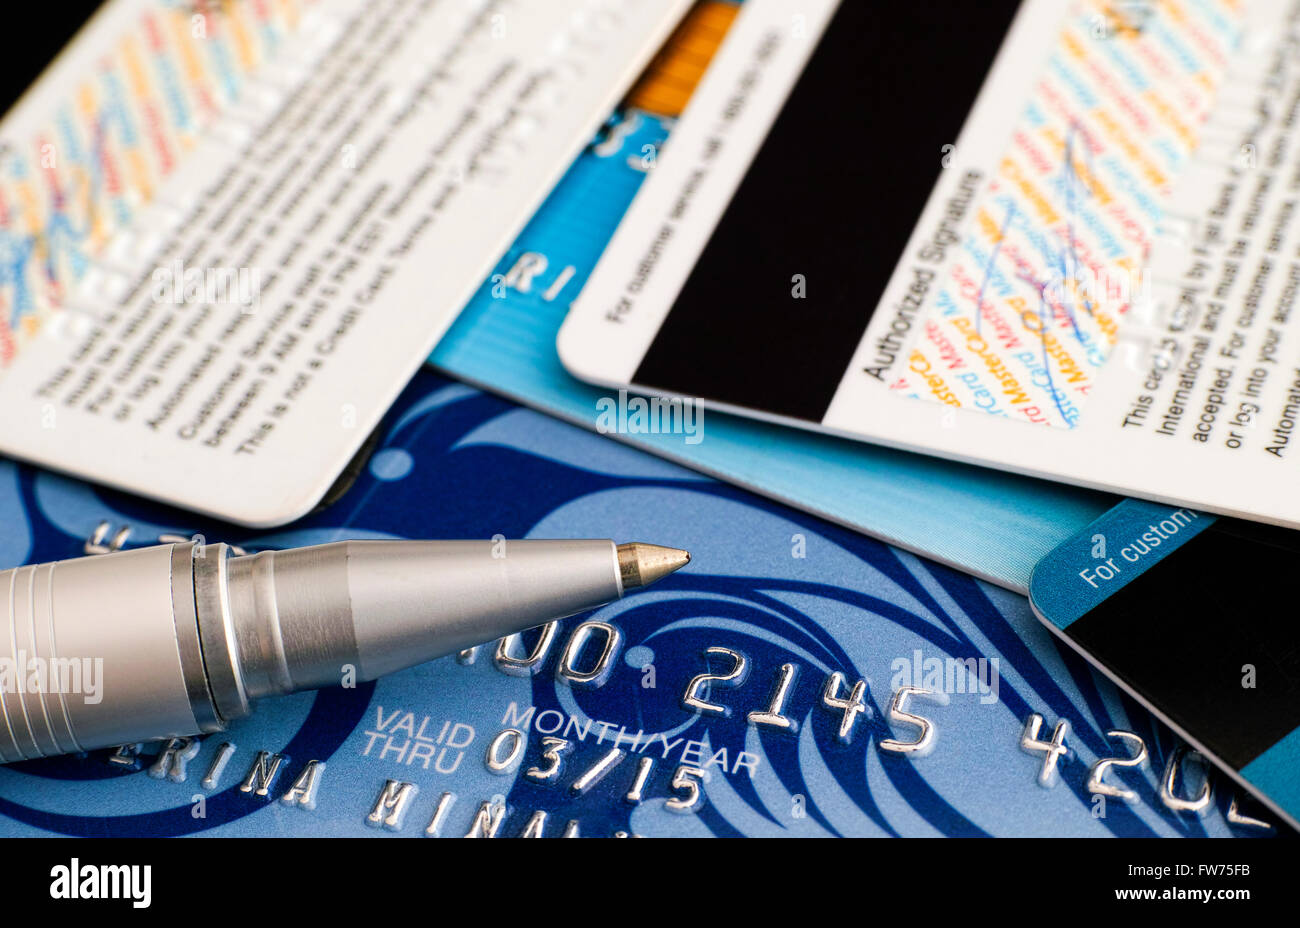 Tambov, Russian Federation - March 31, 2015 Credit cards with ballpoint pen. Studio shot. Stock Photo